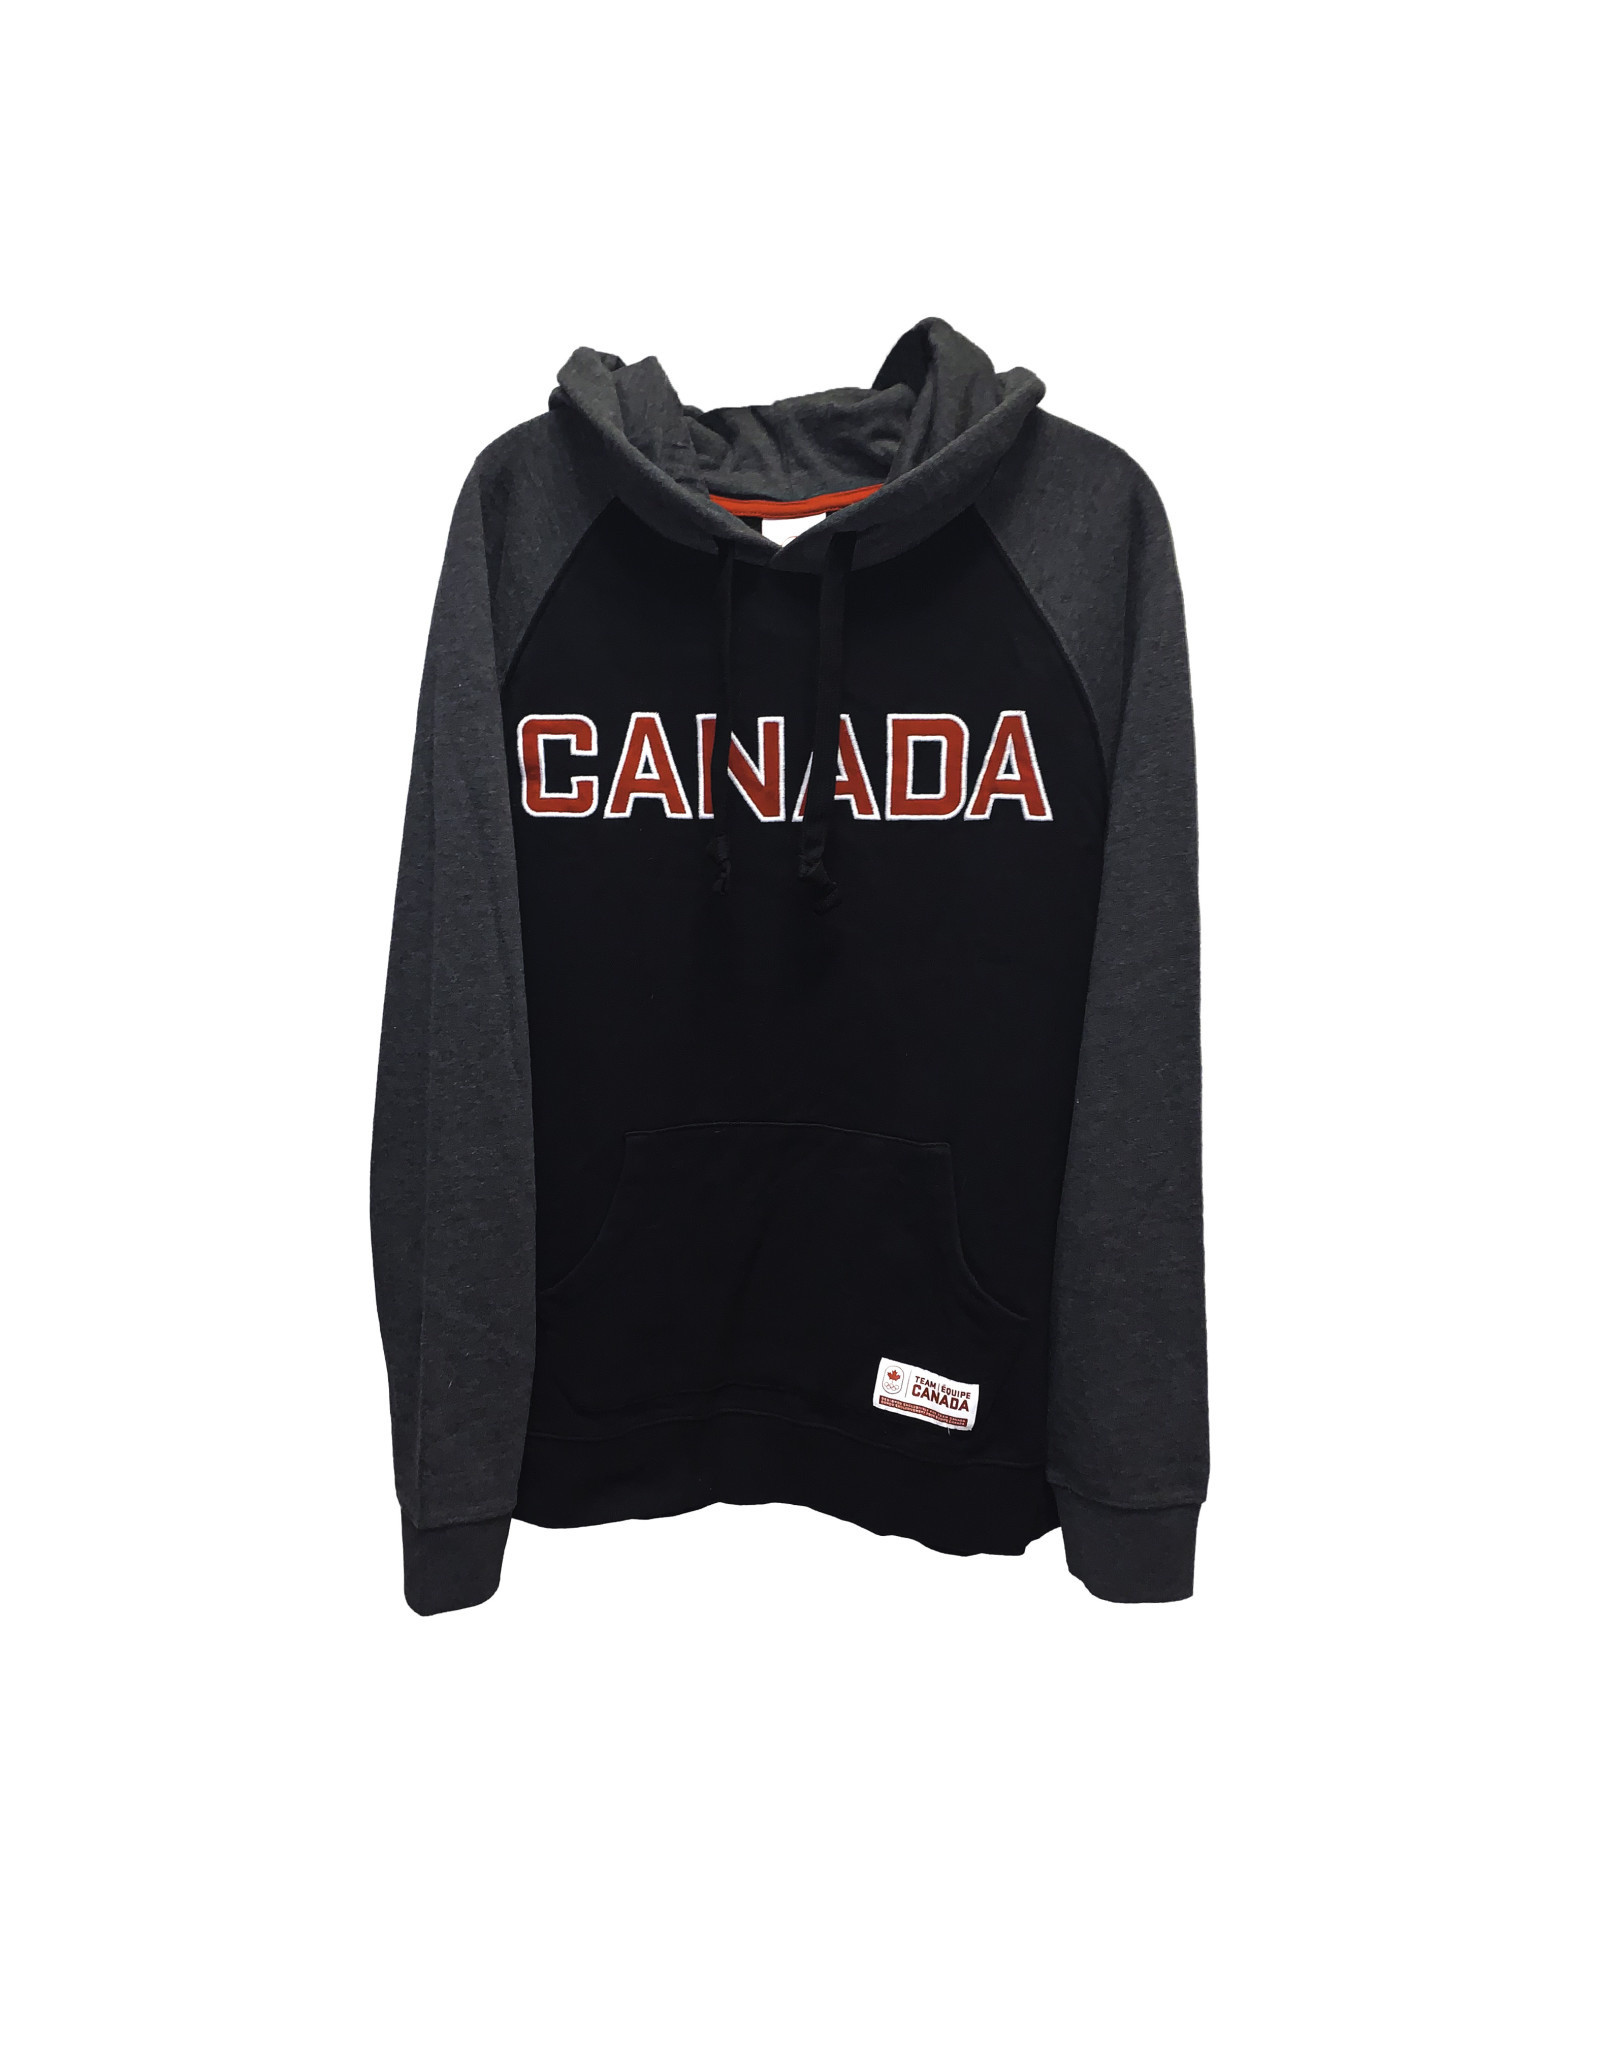 Canadian Olympic Canadian Olympic Pullover Hoodie Size